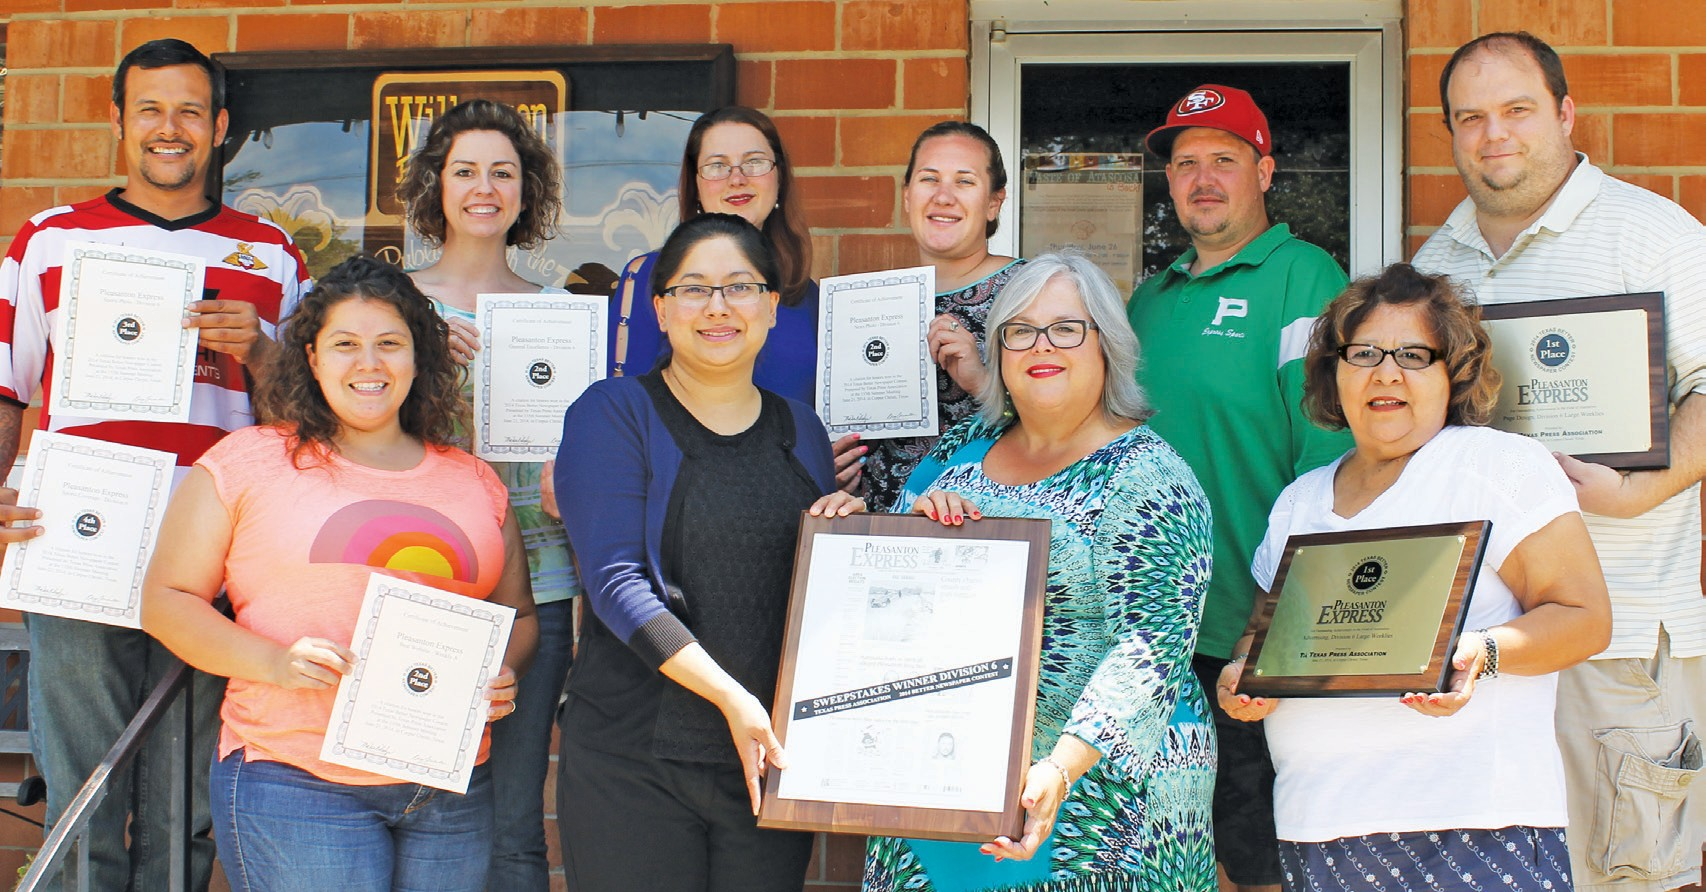 Left to right are some of the award-winning staff of the Pleasanton Express. Texas Press Association Better Newspaper Contest awarded Sweepstakes to the paper at the Leadership Retreat held last weekend. Pictured with their awards are, left to right, front row: Jessica M. Machado, Lisa Luna, Sue Brown and Hope Garza. Top row are Chris Filoteo, Robbie Hamby, Rhonda Chancellor, Megan Benishek, Aaron Davidson and David Wickersham. Missing are Mary Gallegos, Noel Wilkerson Holmes, Leon Zabava and Maggie Rodriguez.